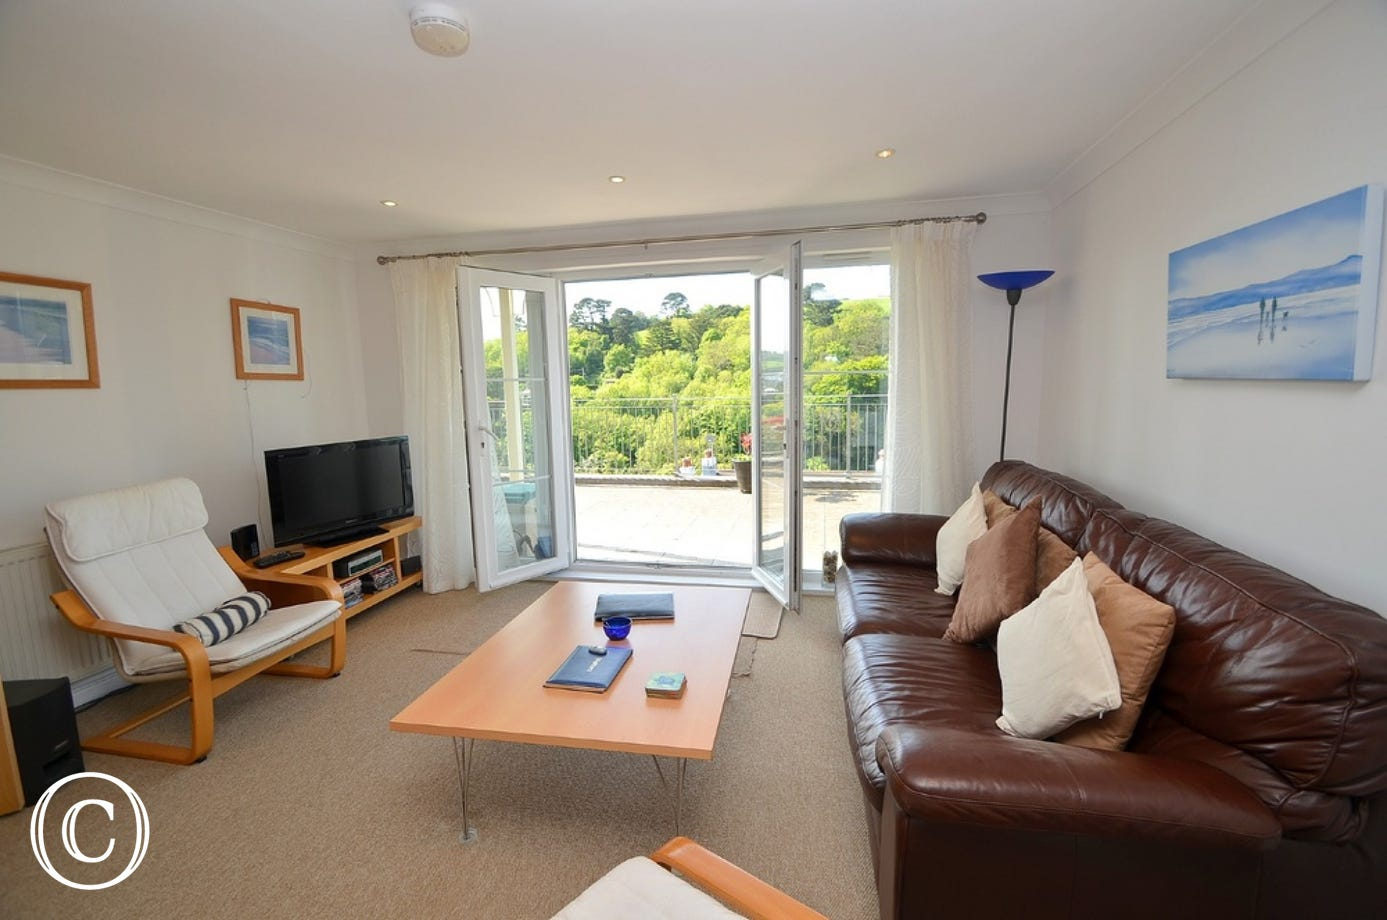 Living area: Stylish and modern open plan living, kitchen and dining area with fabulous views over the River Dart. Three seater sofa and two armchairs. Patio doors onto the private furnished terrace area. Flatscreen LCD TV with DVD player, music stereo wi